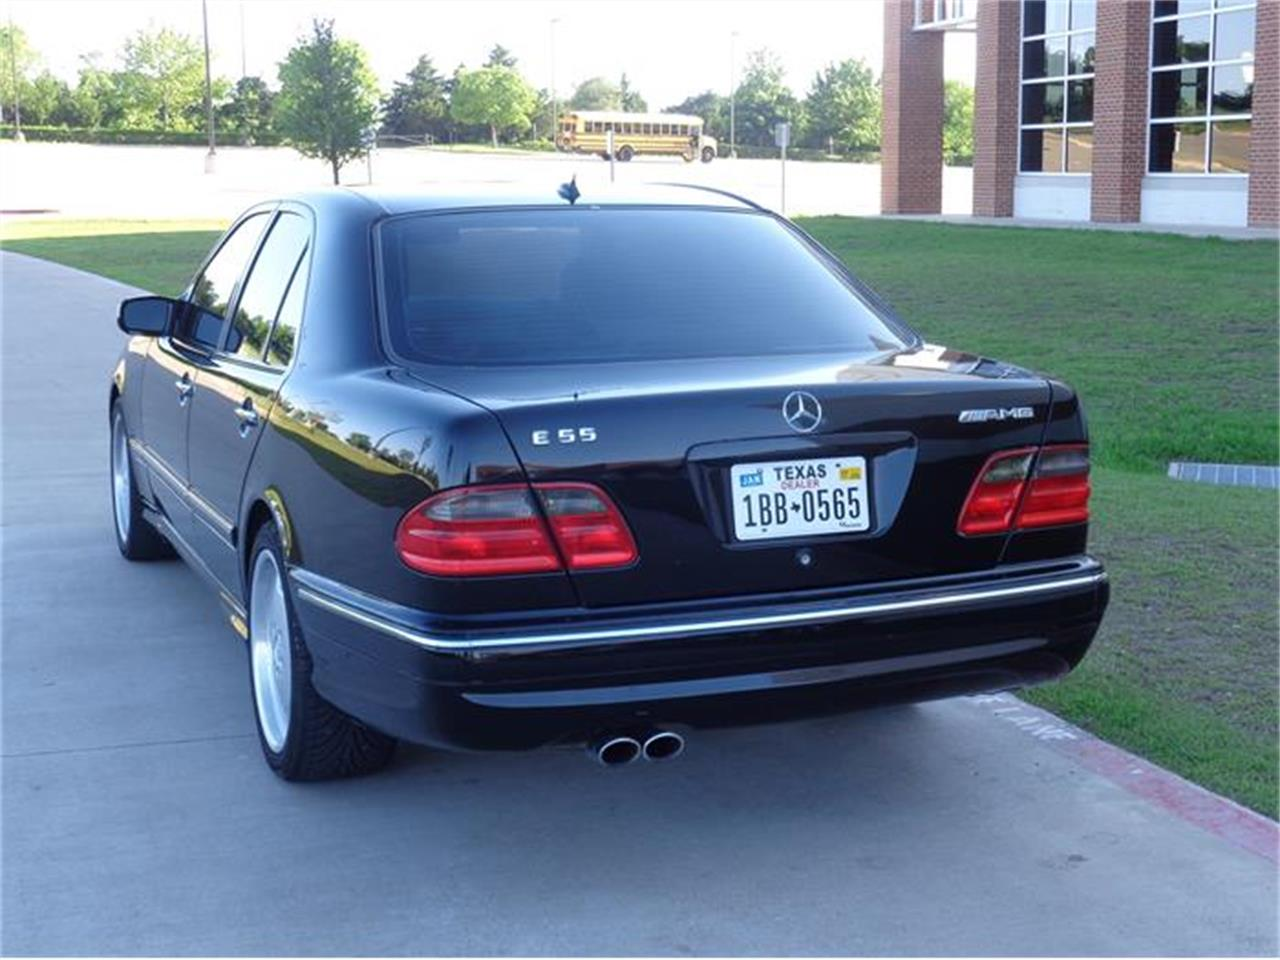 Large Picture of '01 E55 - $12,200.00 Offered by Enthusiast Motor Cars of Texas - HUJ9